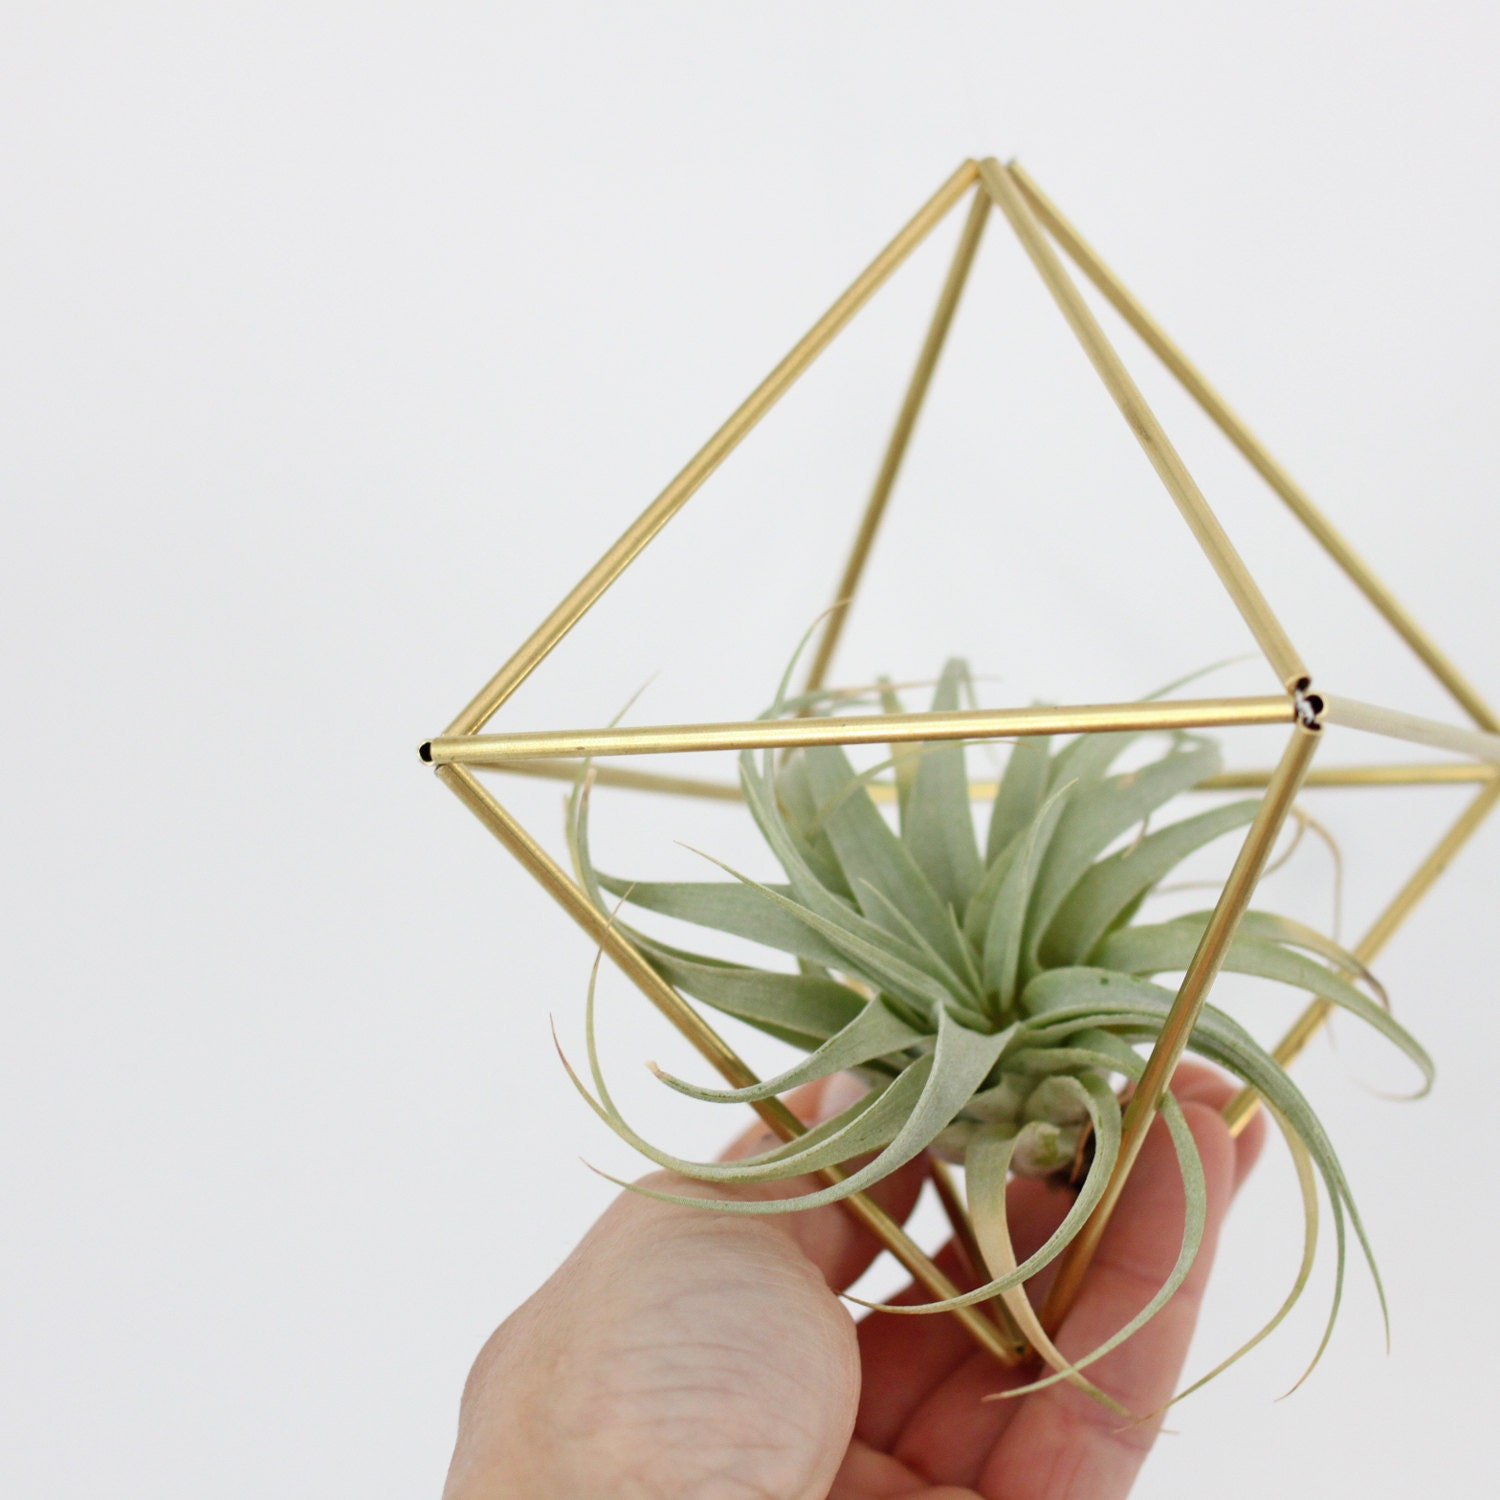 Brass Himmeli Air Plant Holder no. 1 / Modern Hanging Mobile / Geometric Ornament / Minimalist Home Decor - HRUSKAA